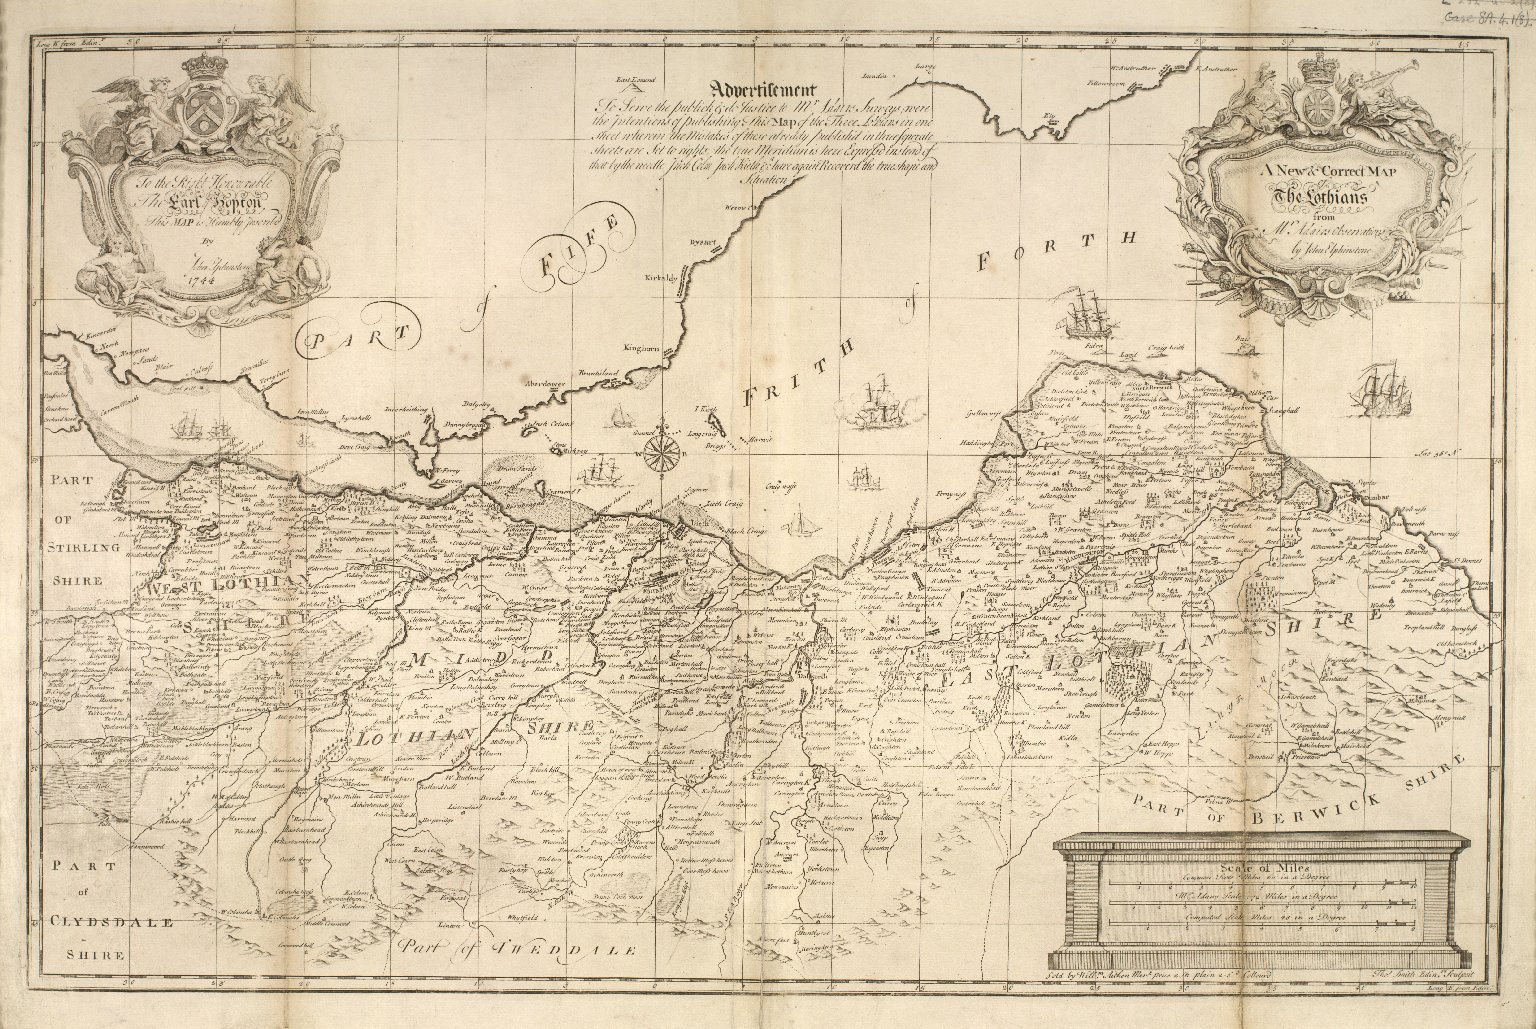 A New and Correct map of the Lothians from Mr. Adair's observations [1 of 1]